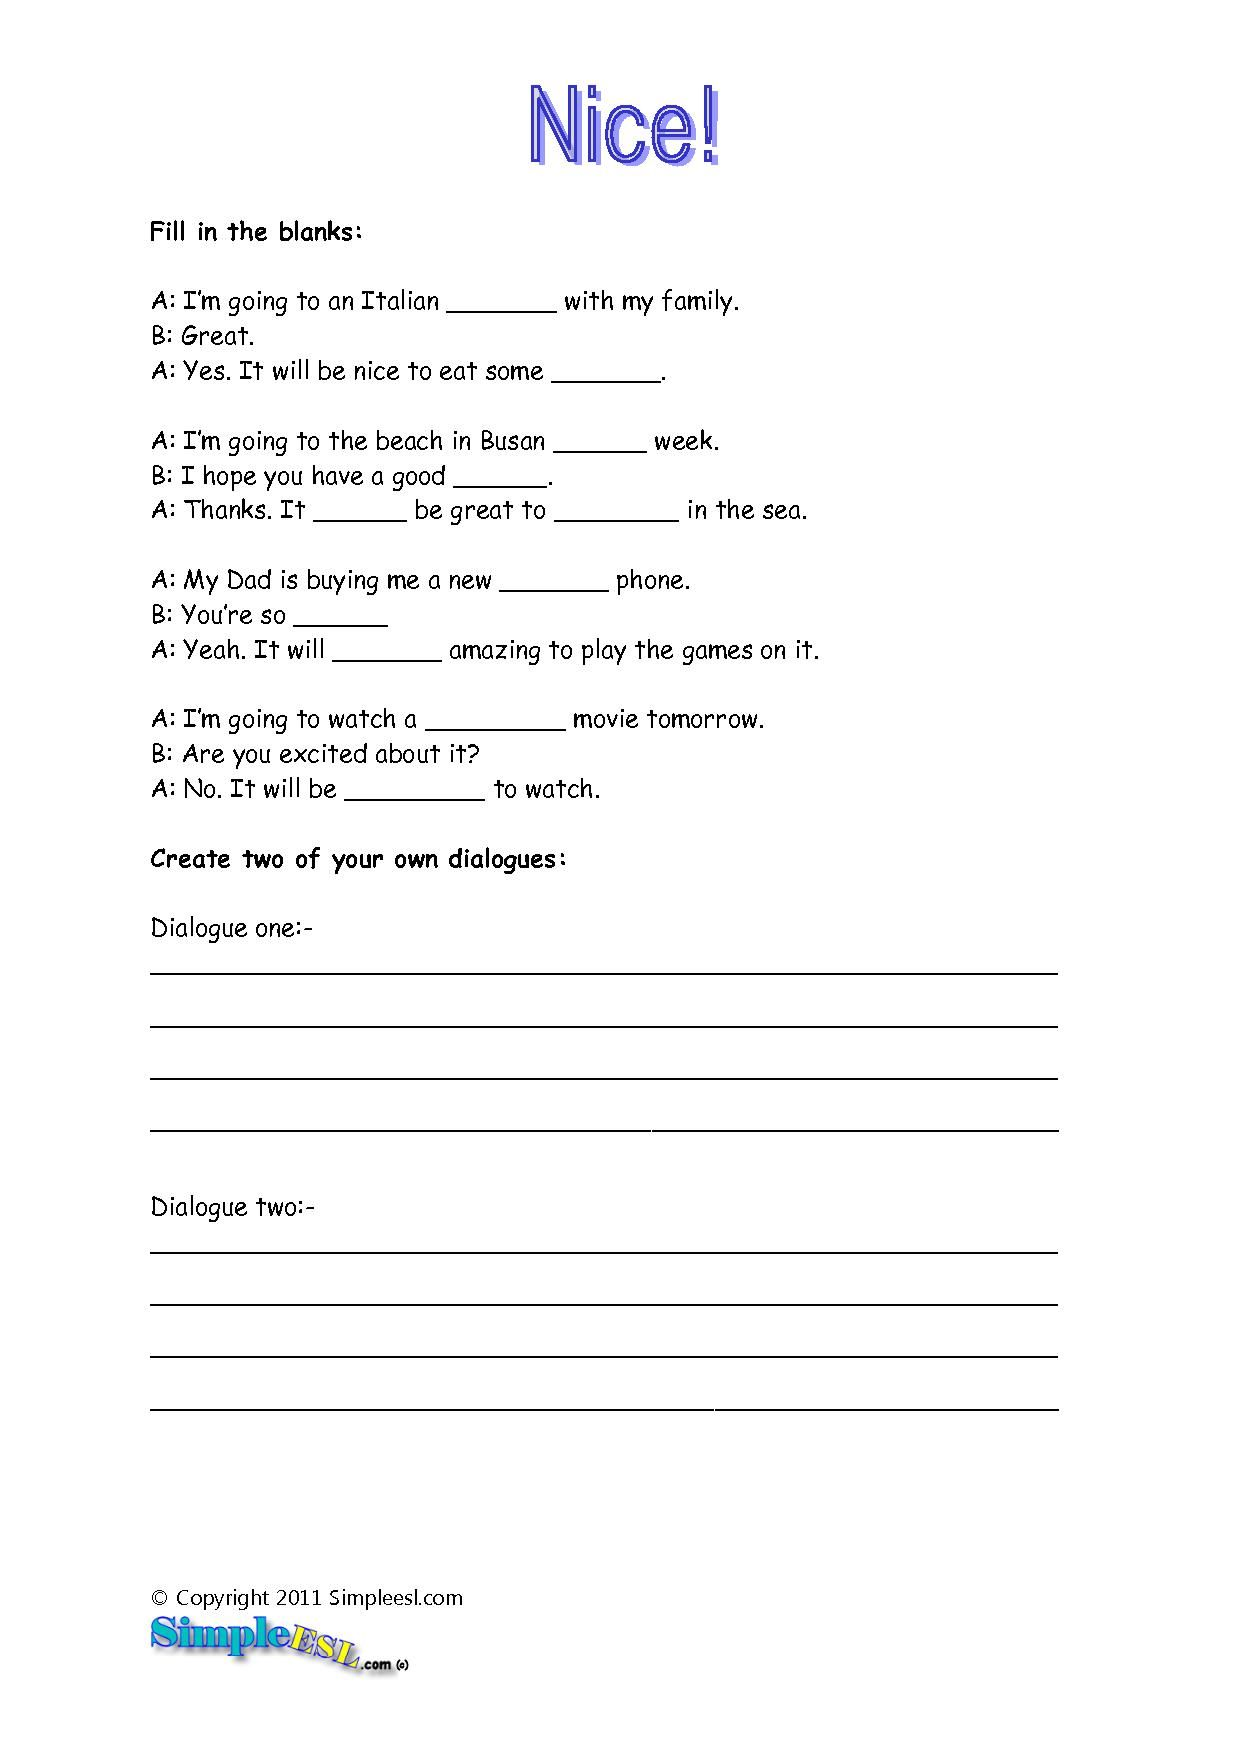 Traits Printable Worksheet On Honesty